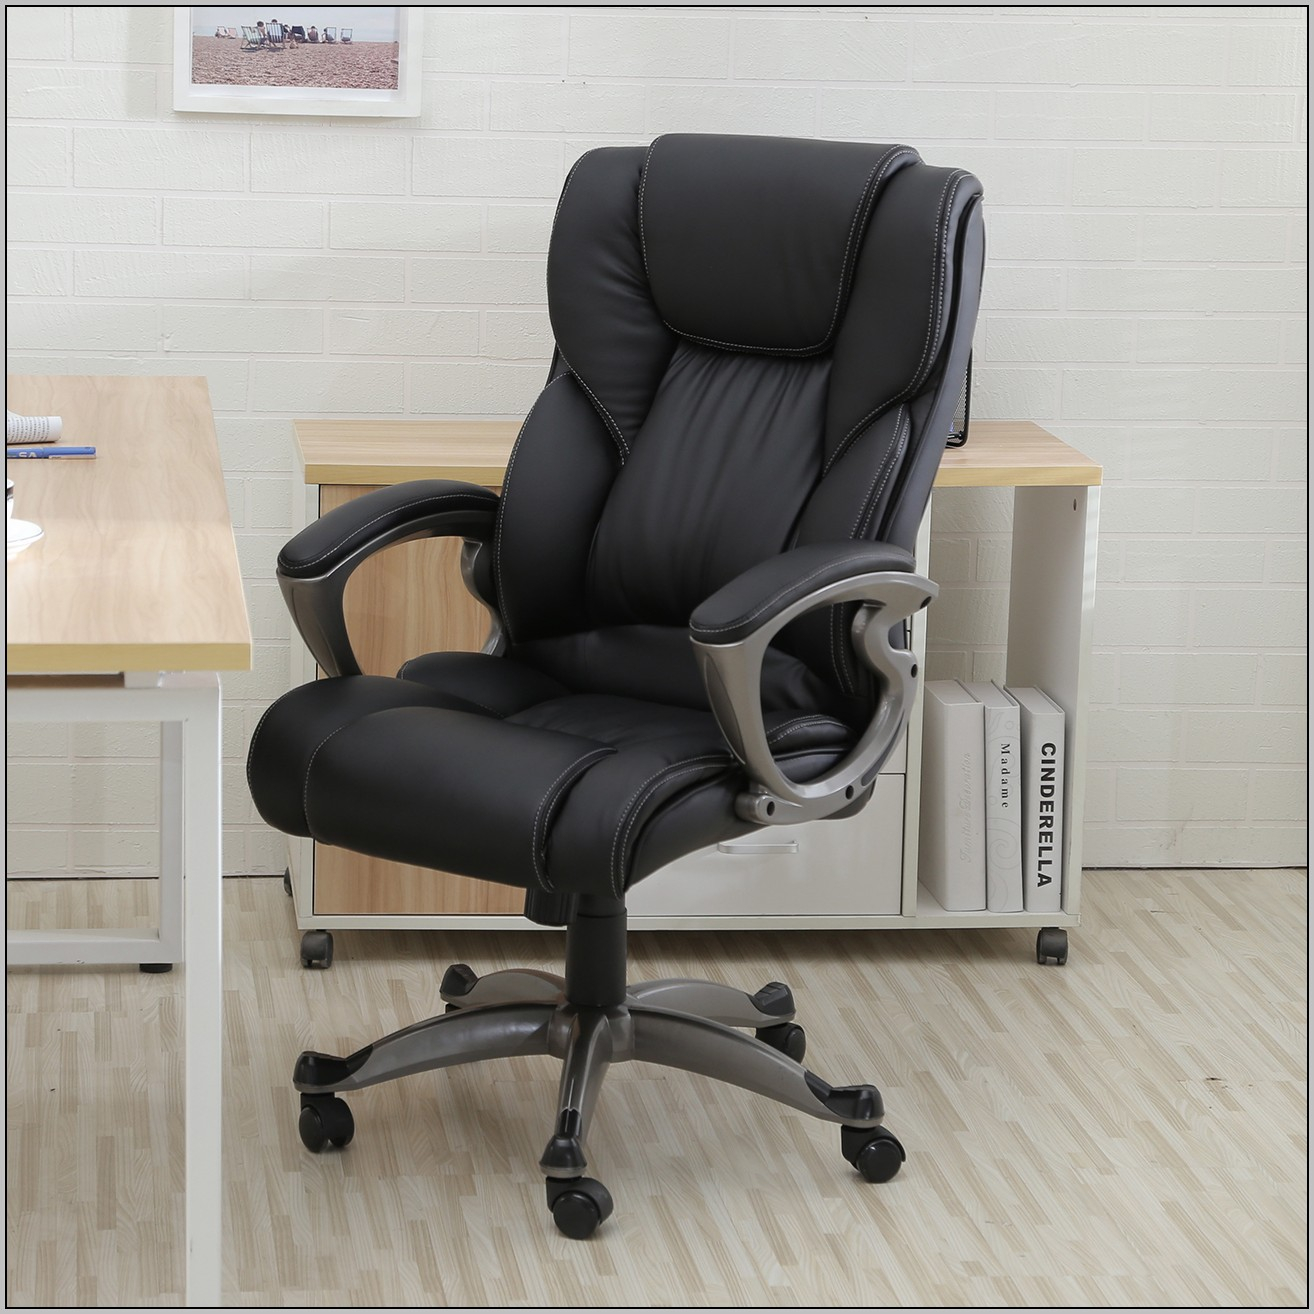 Extra Large Office Chair Casters Chairs Home Decorating Ideas pertaining to measurements 1314 X 1314